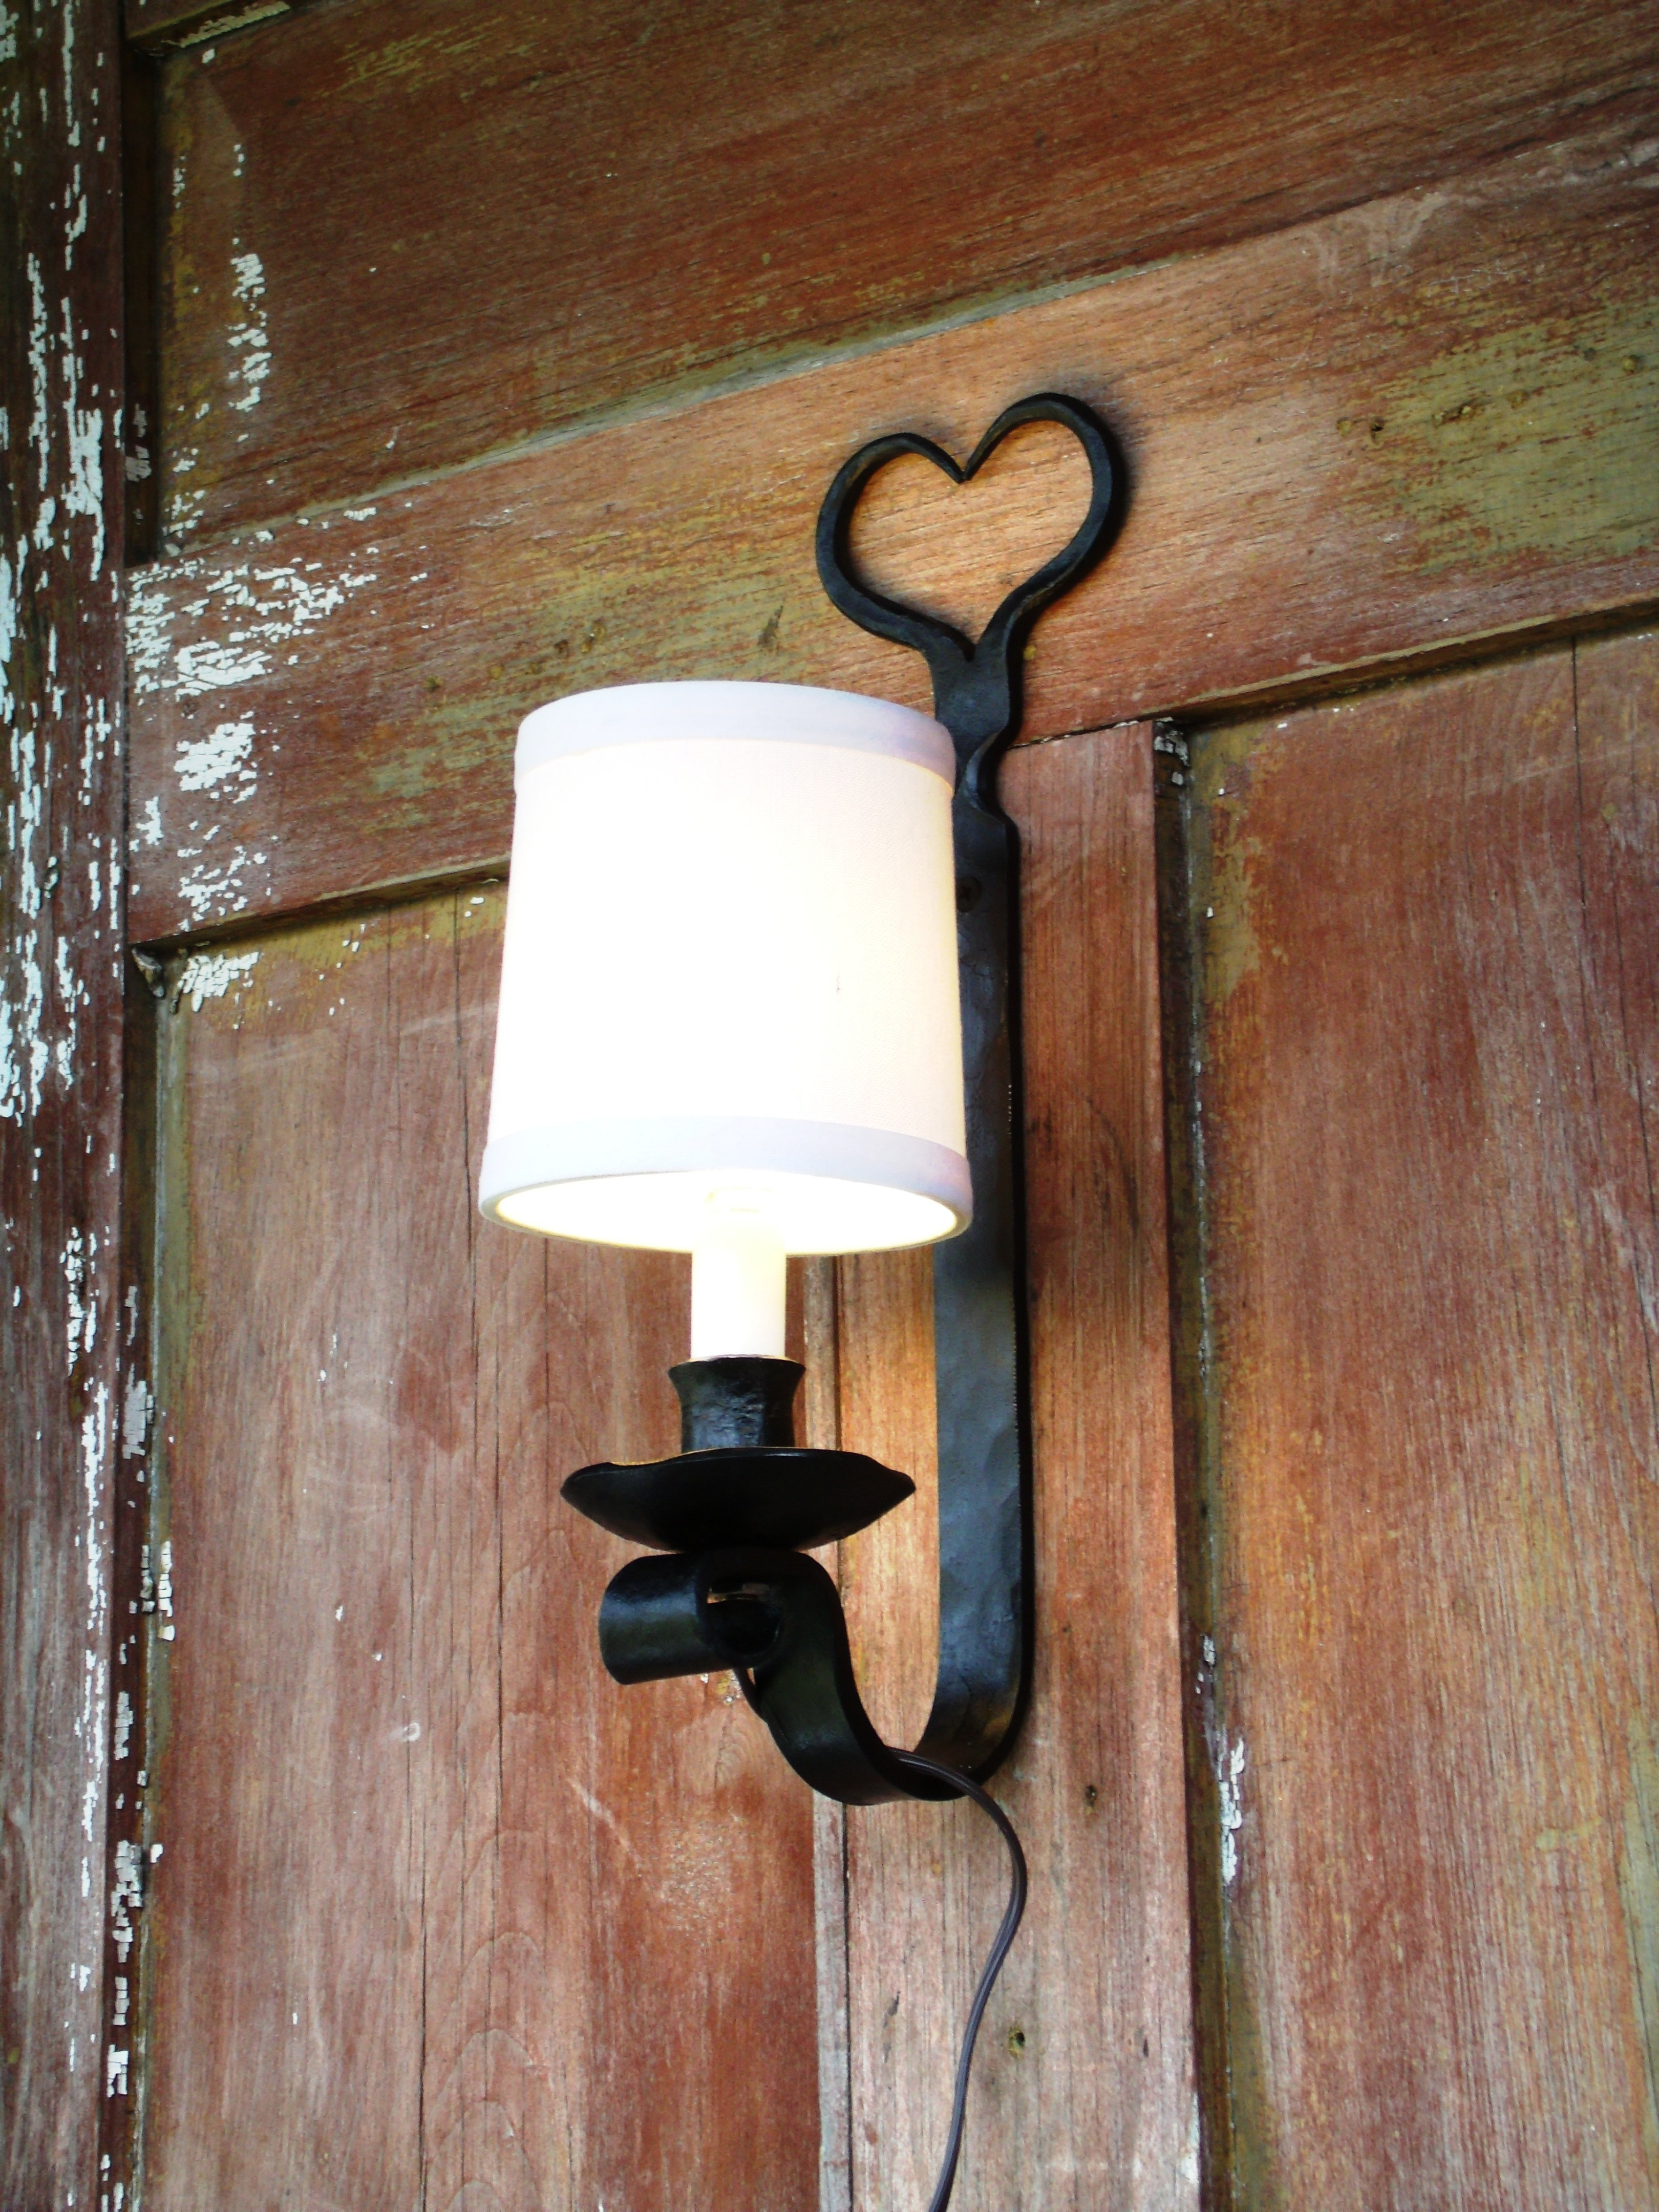 Electric Wall Sconce Heart Shape Hand Forged Wrought Iron Electric Wall Sconce Sconces Wall Sconces